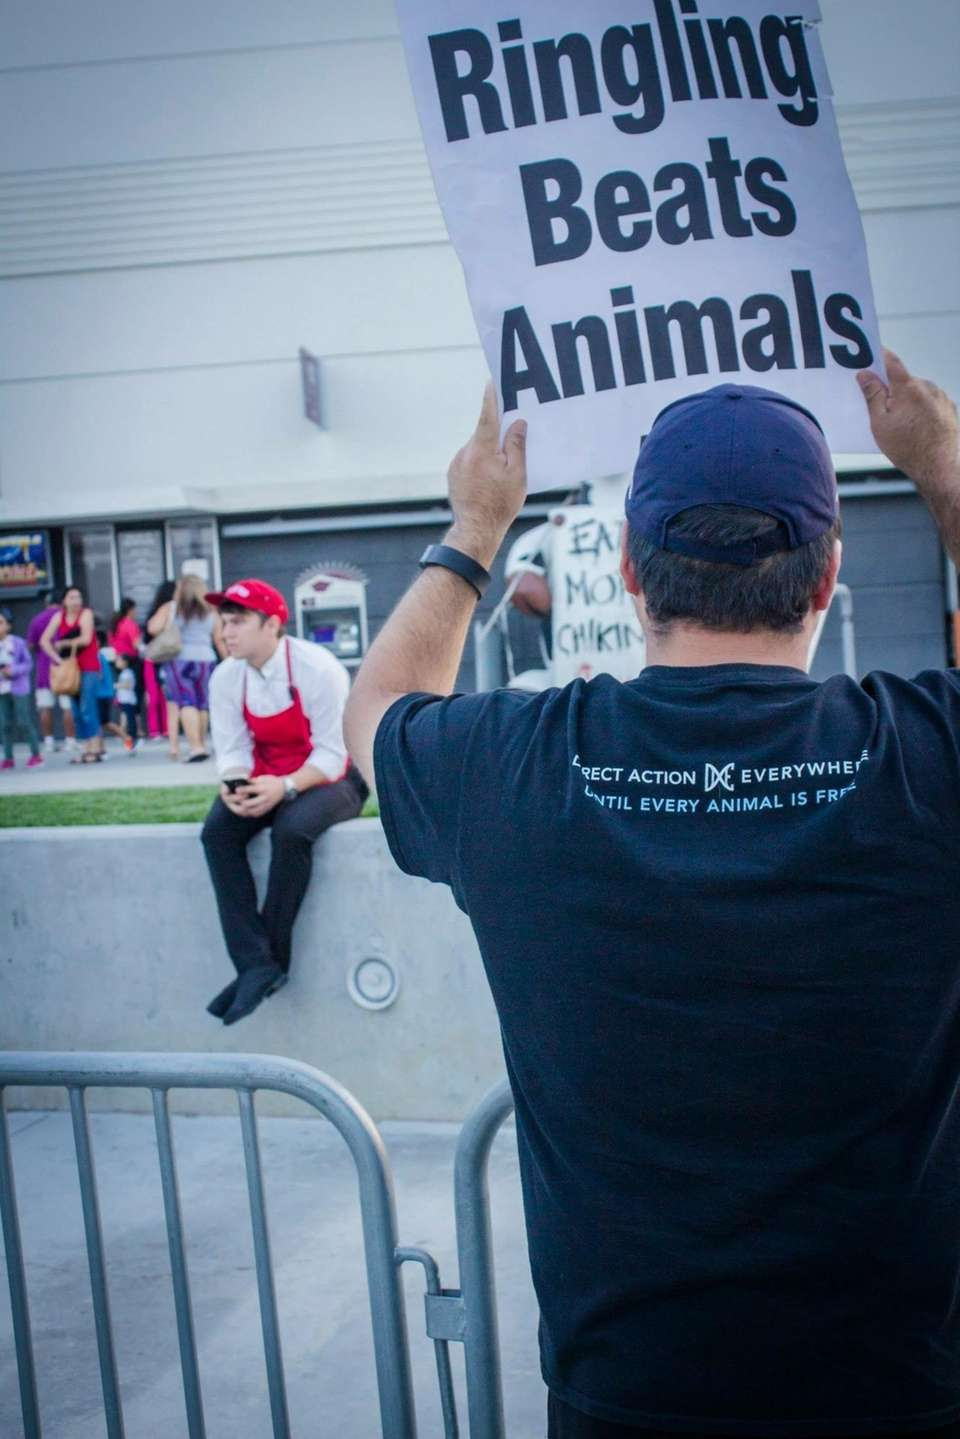 Been protesting Ringling Bros for almost 4 years.